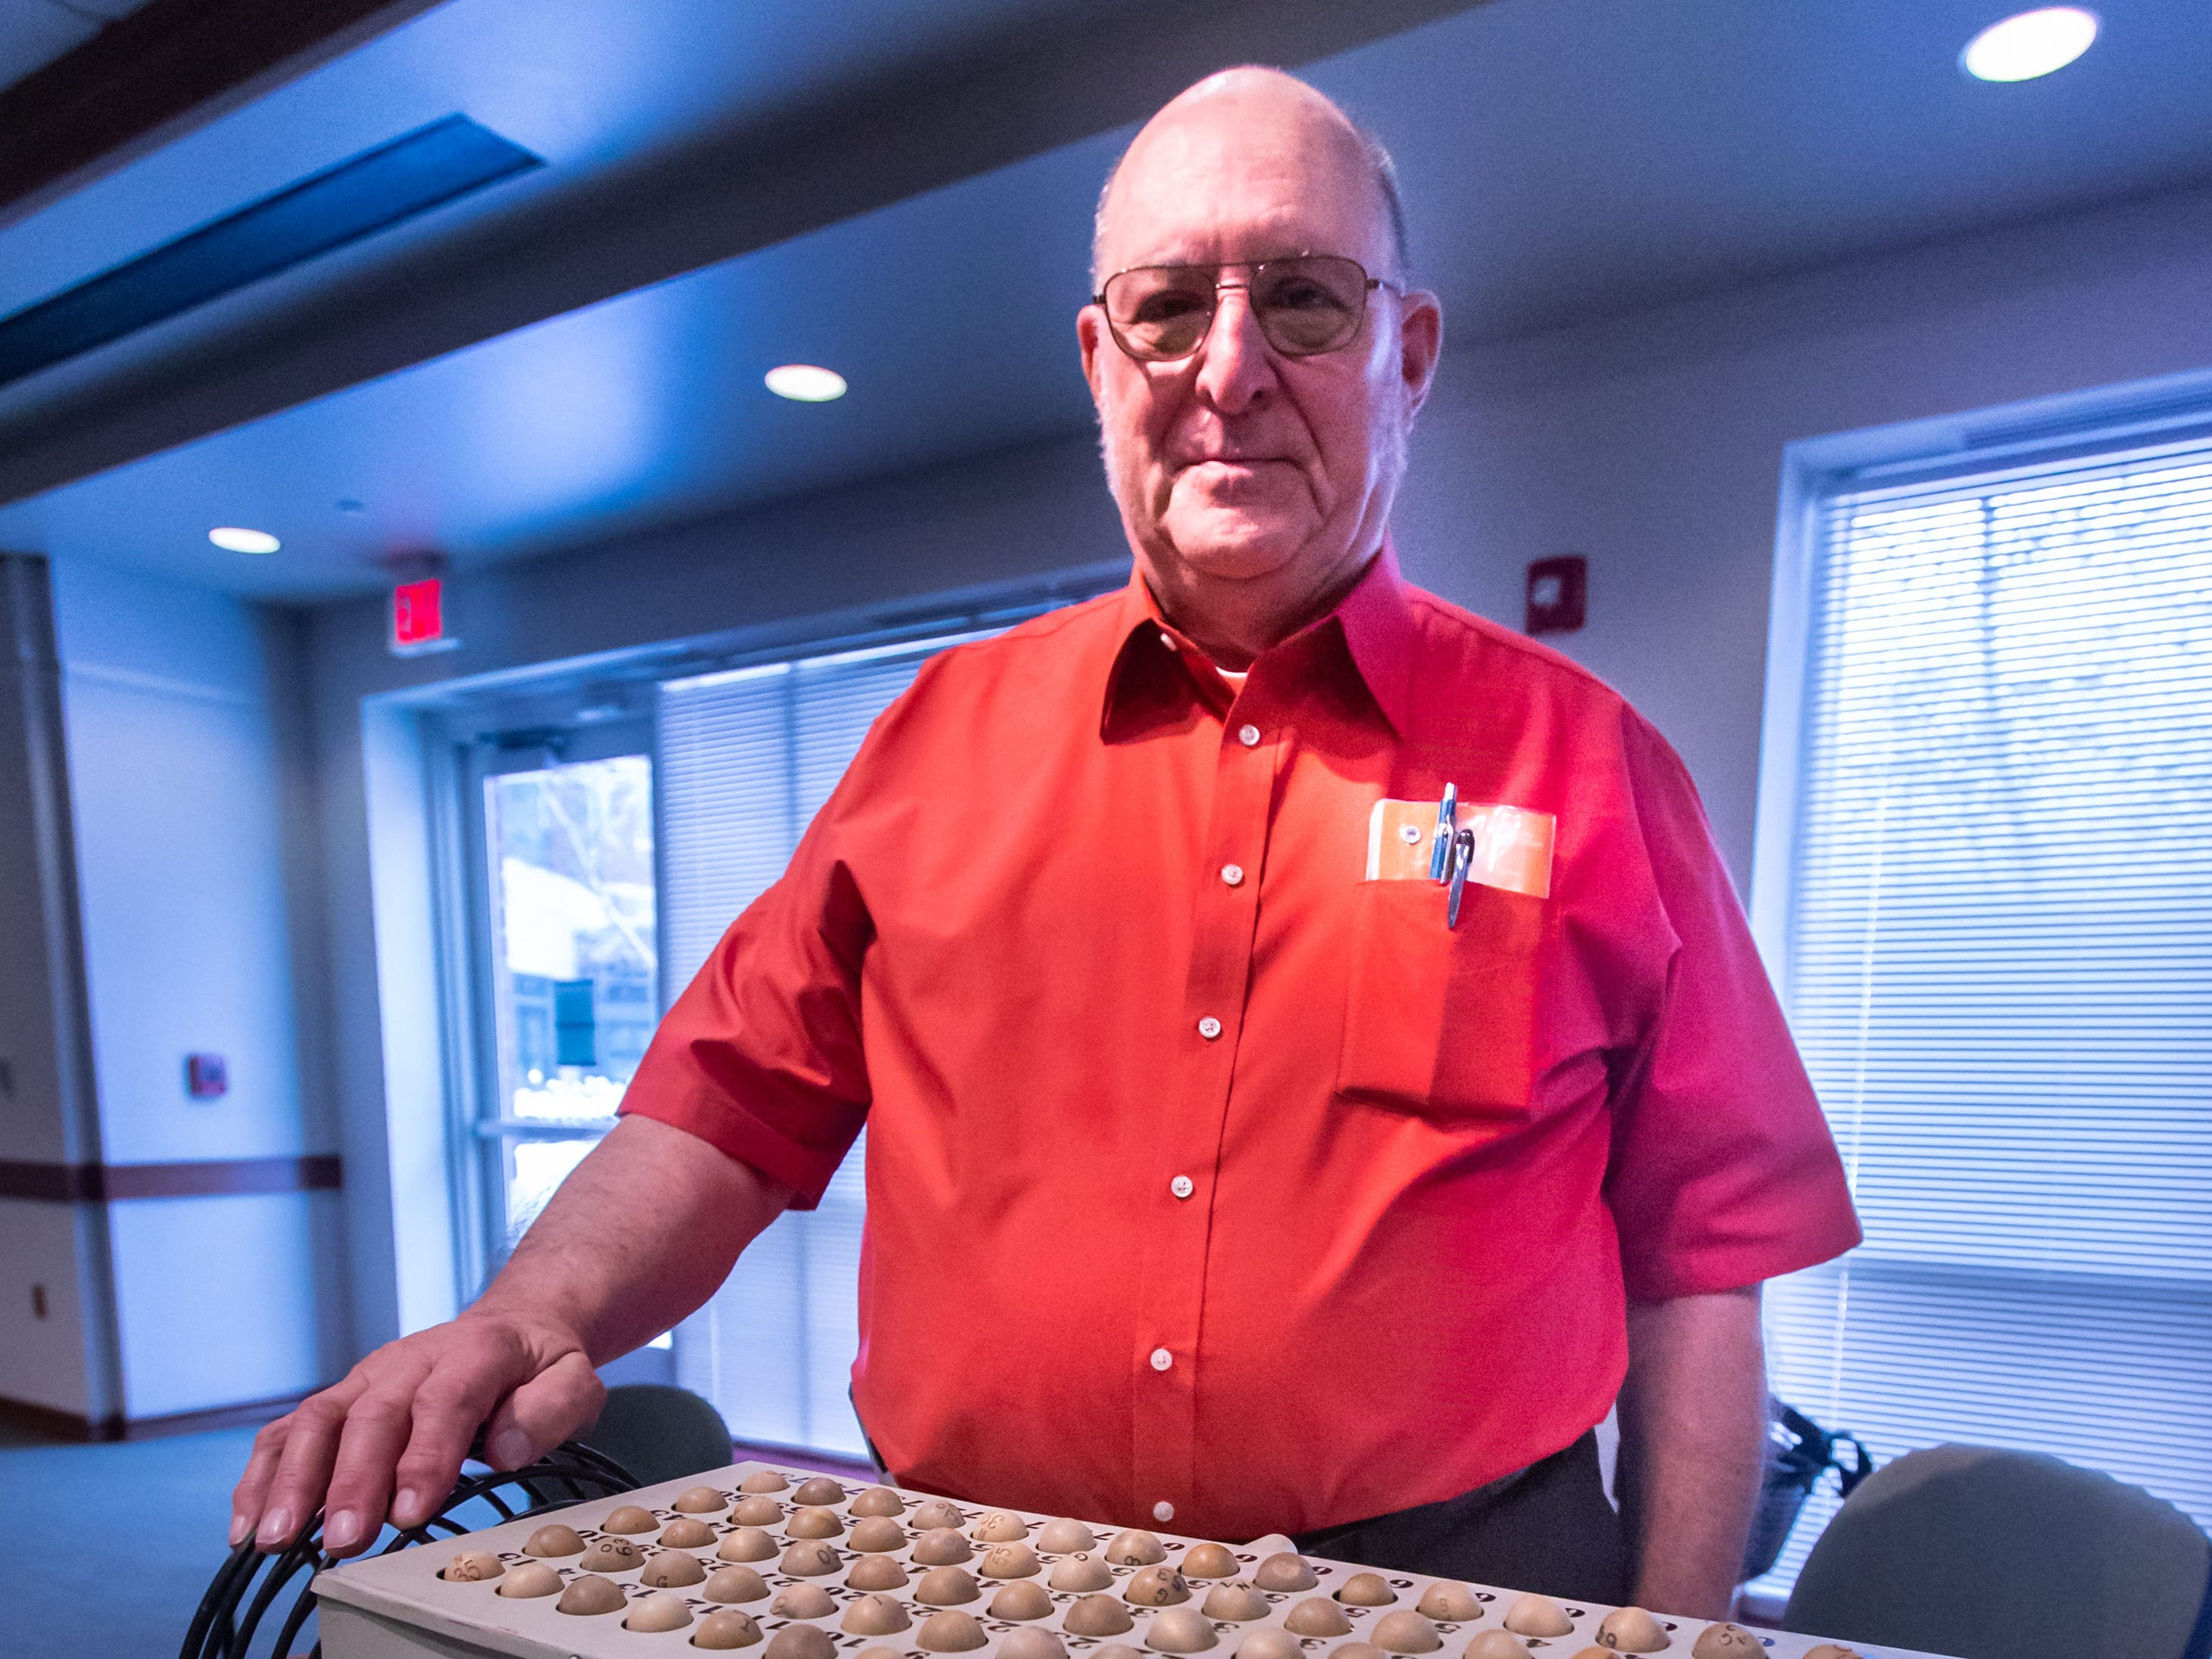 Expert Bingo caller Dick Schliewe of Oconomowoc prepares to call a game during a special New Year's Day gathering of the monthly senior breakfast club at Aurora Health Care in Summit on Tuesday, Jan. 1, 2019. Senior Breakfast Club is held from 8 to 10 a.m. on the first Tuesday of each month and is free to seniors and their families. For more info please call Trish Golden at 262-434-1248.